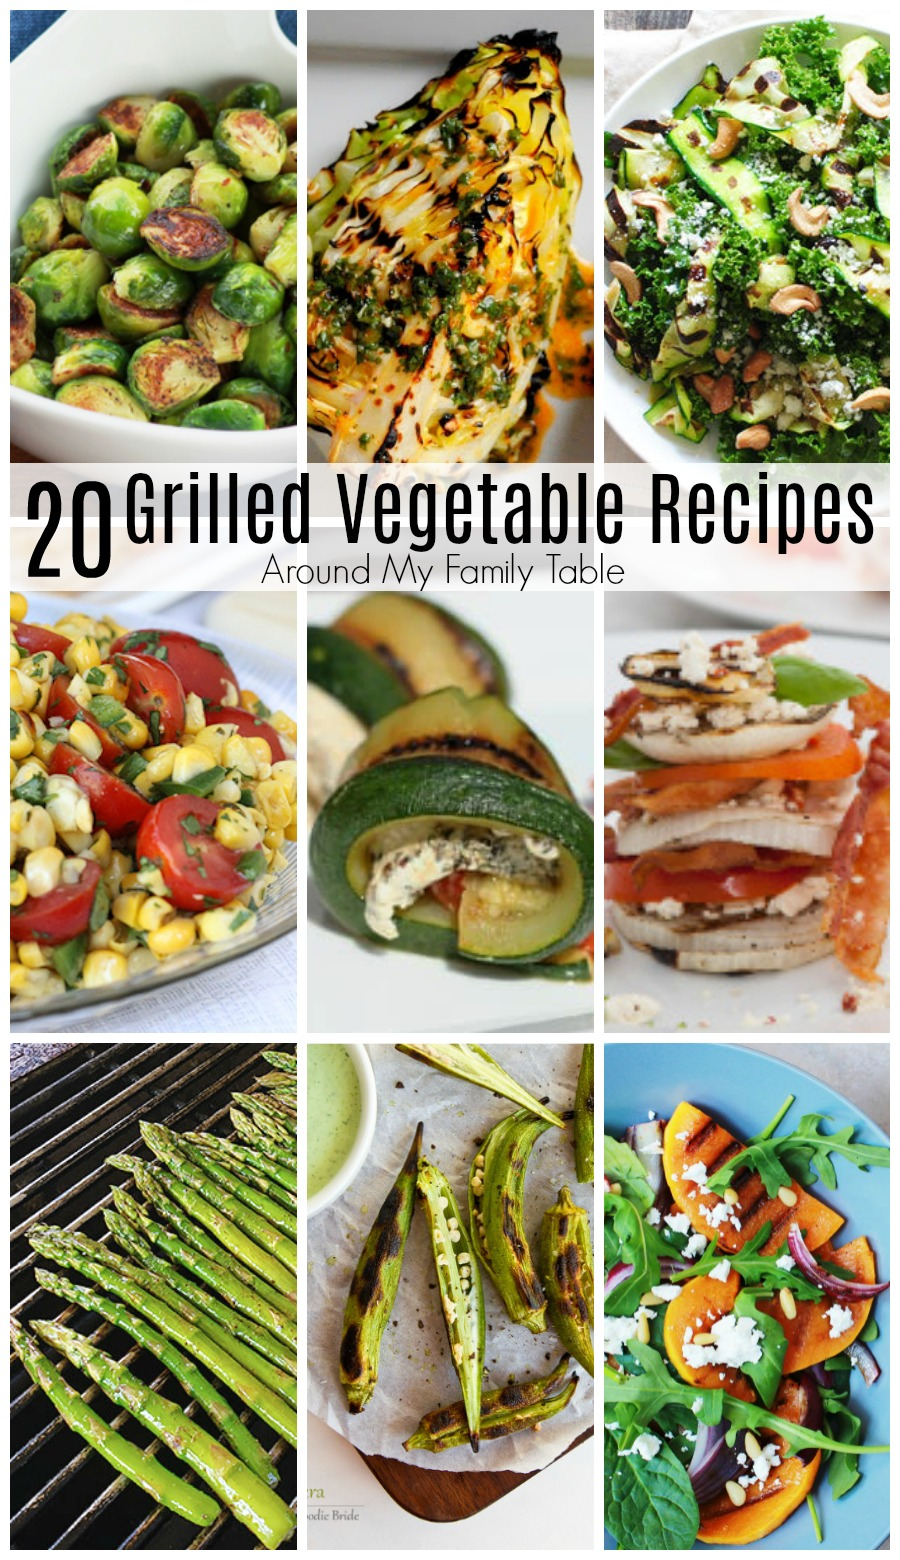 Light up your backyard grill! These 20 Grilled Vegetable Recipes are the perfect addition to your summer menu.